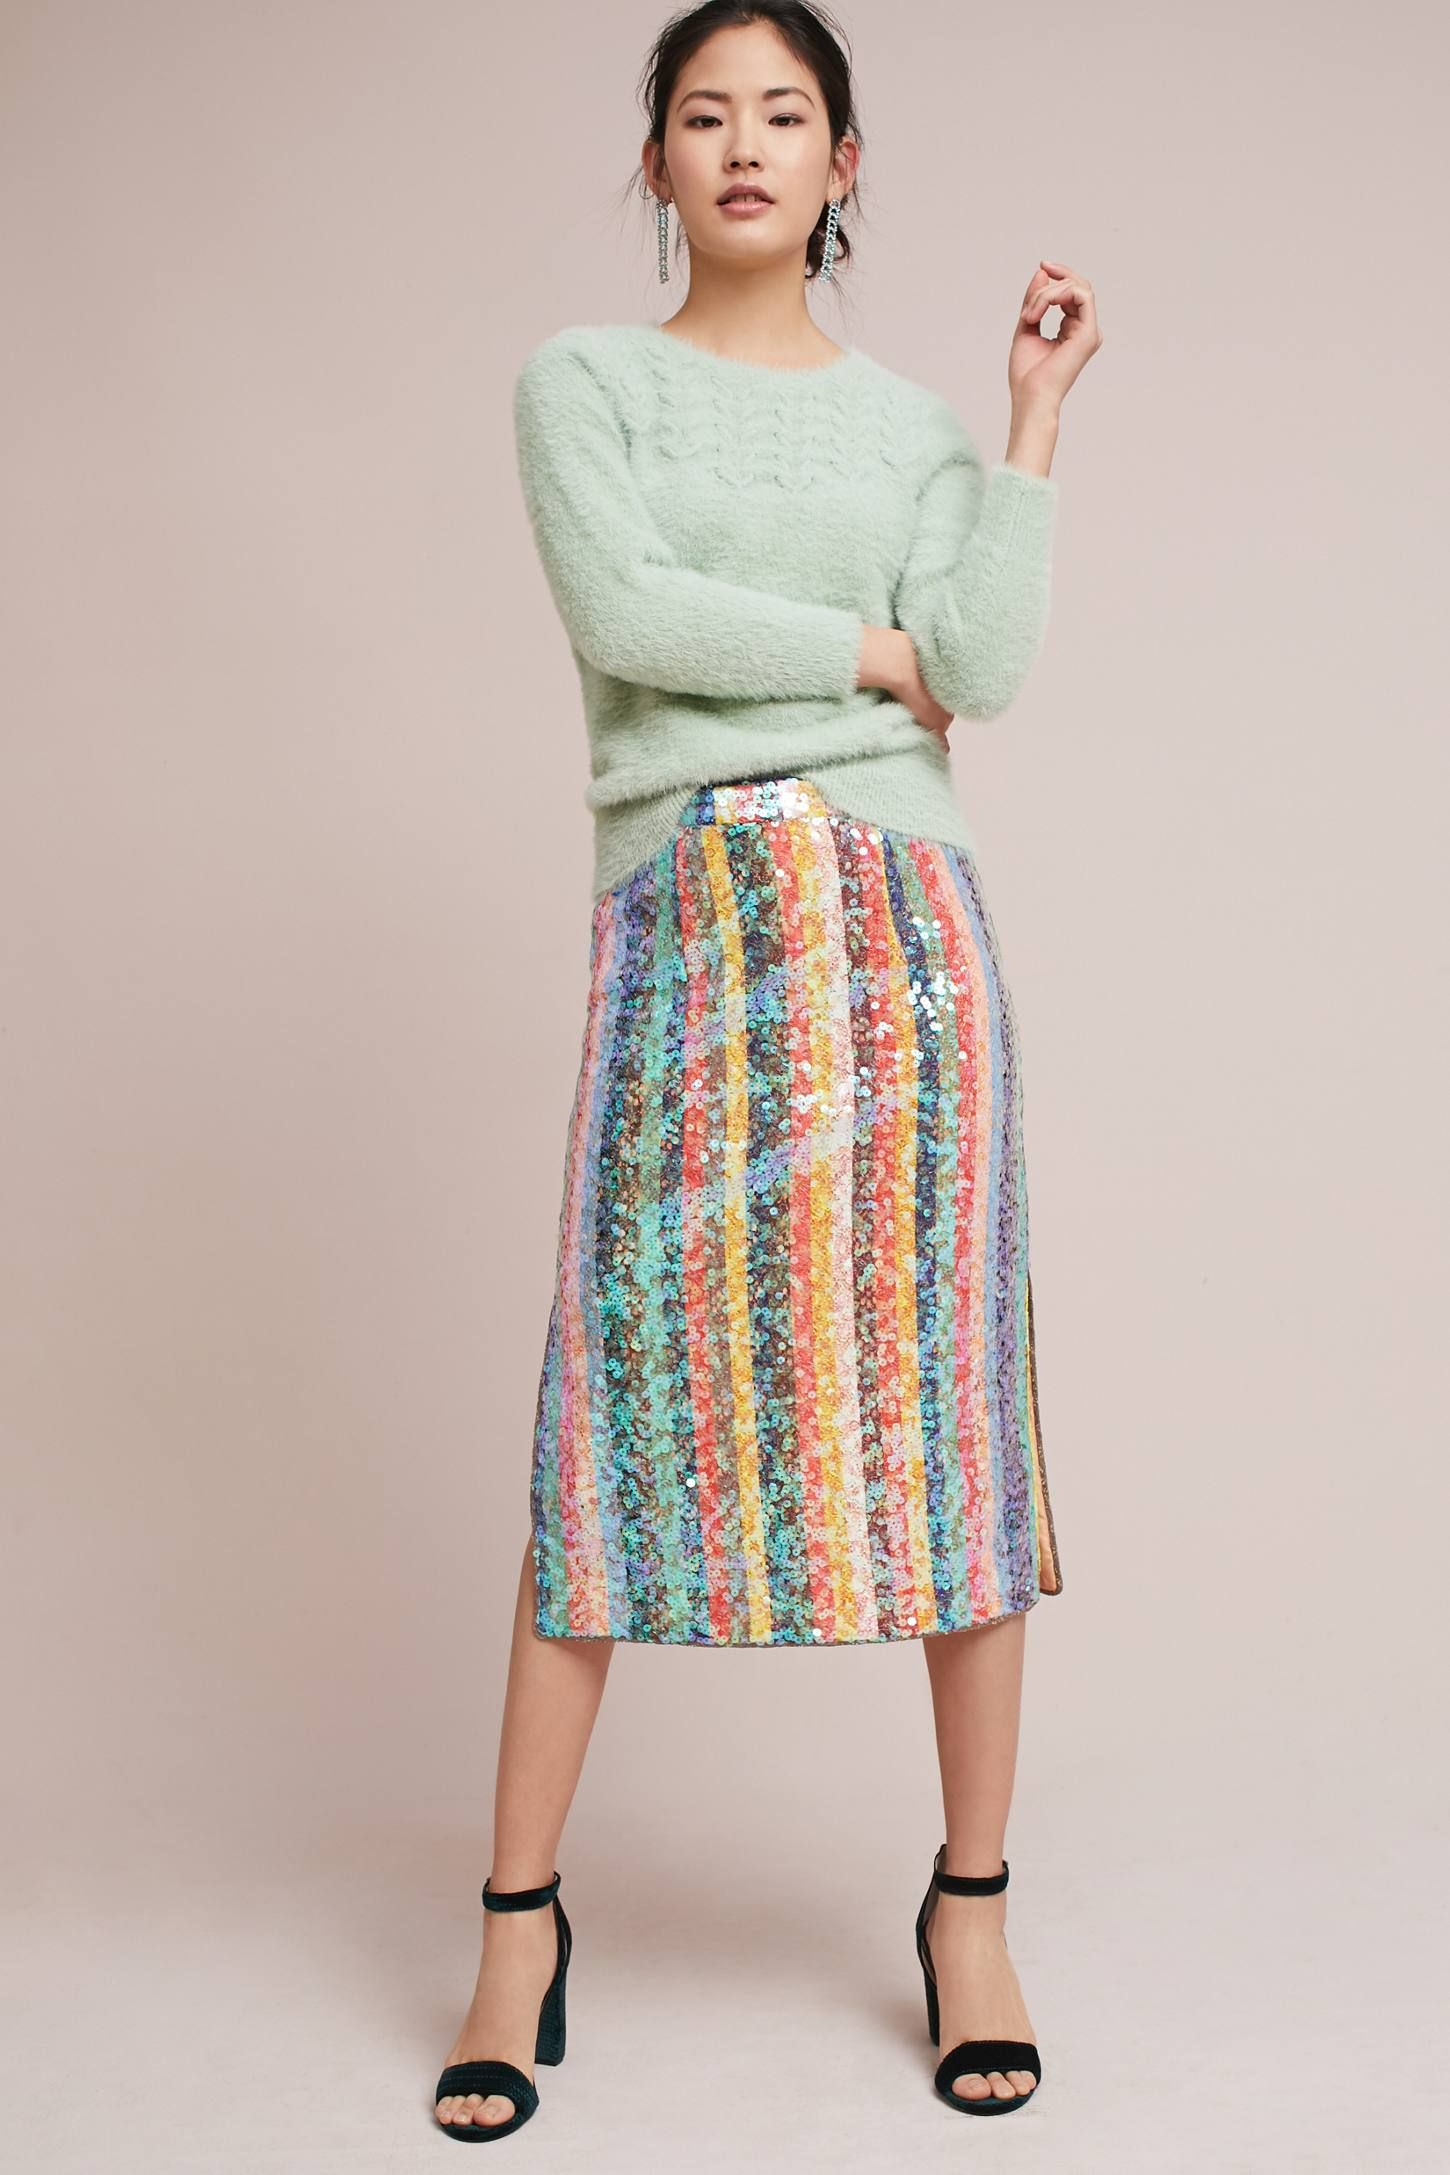 6be79f1a6 Shop the Sequined Palette Skirt and more Anthropologie at Anthropologie  today. Read customer reviews